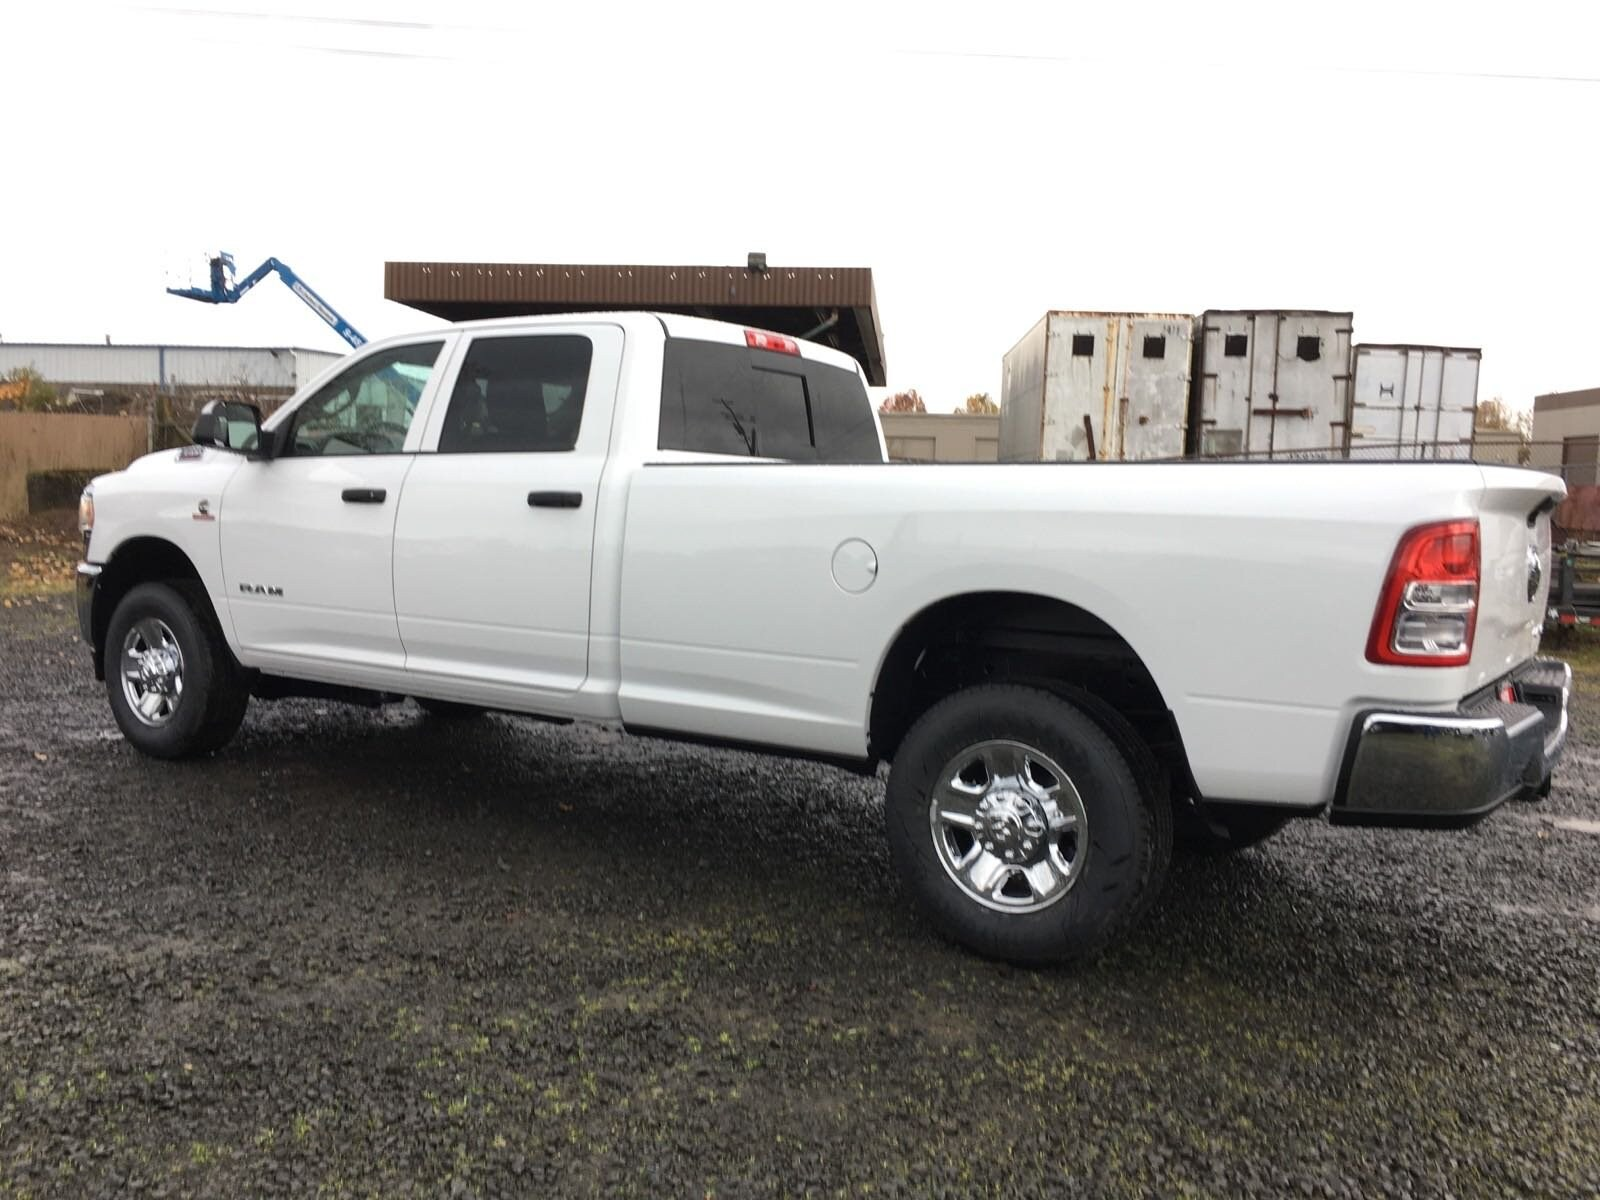 2019 Ram 3500 Crew Cab 4x4, Pickup #R1919 - photo 1